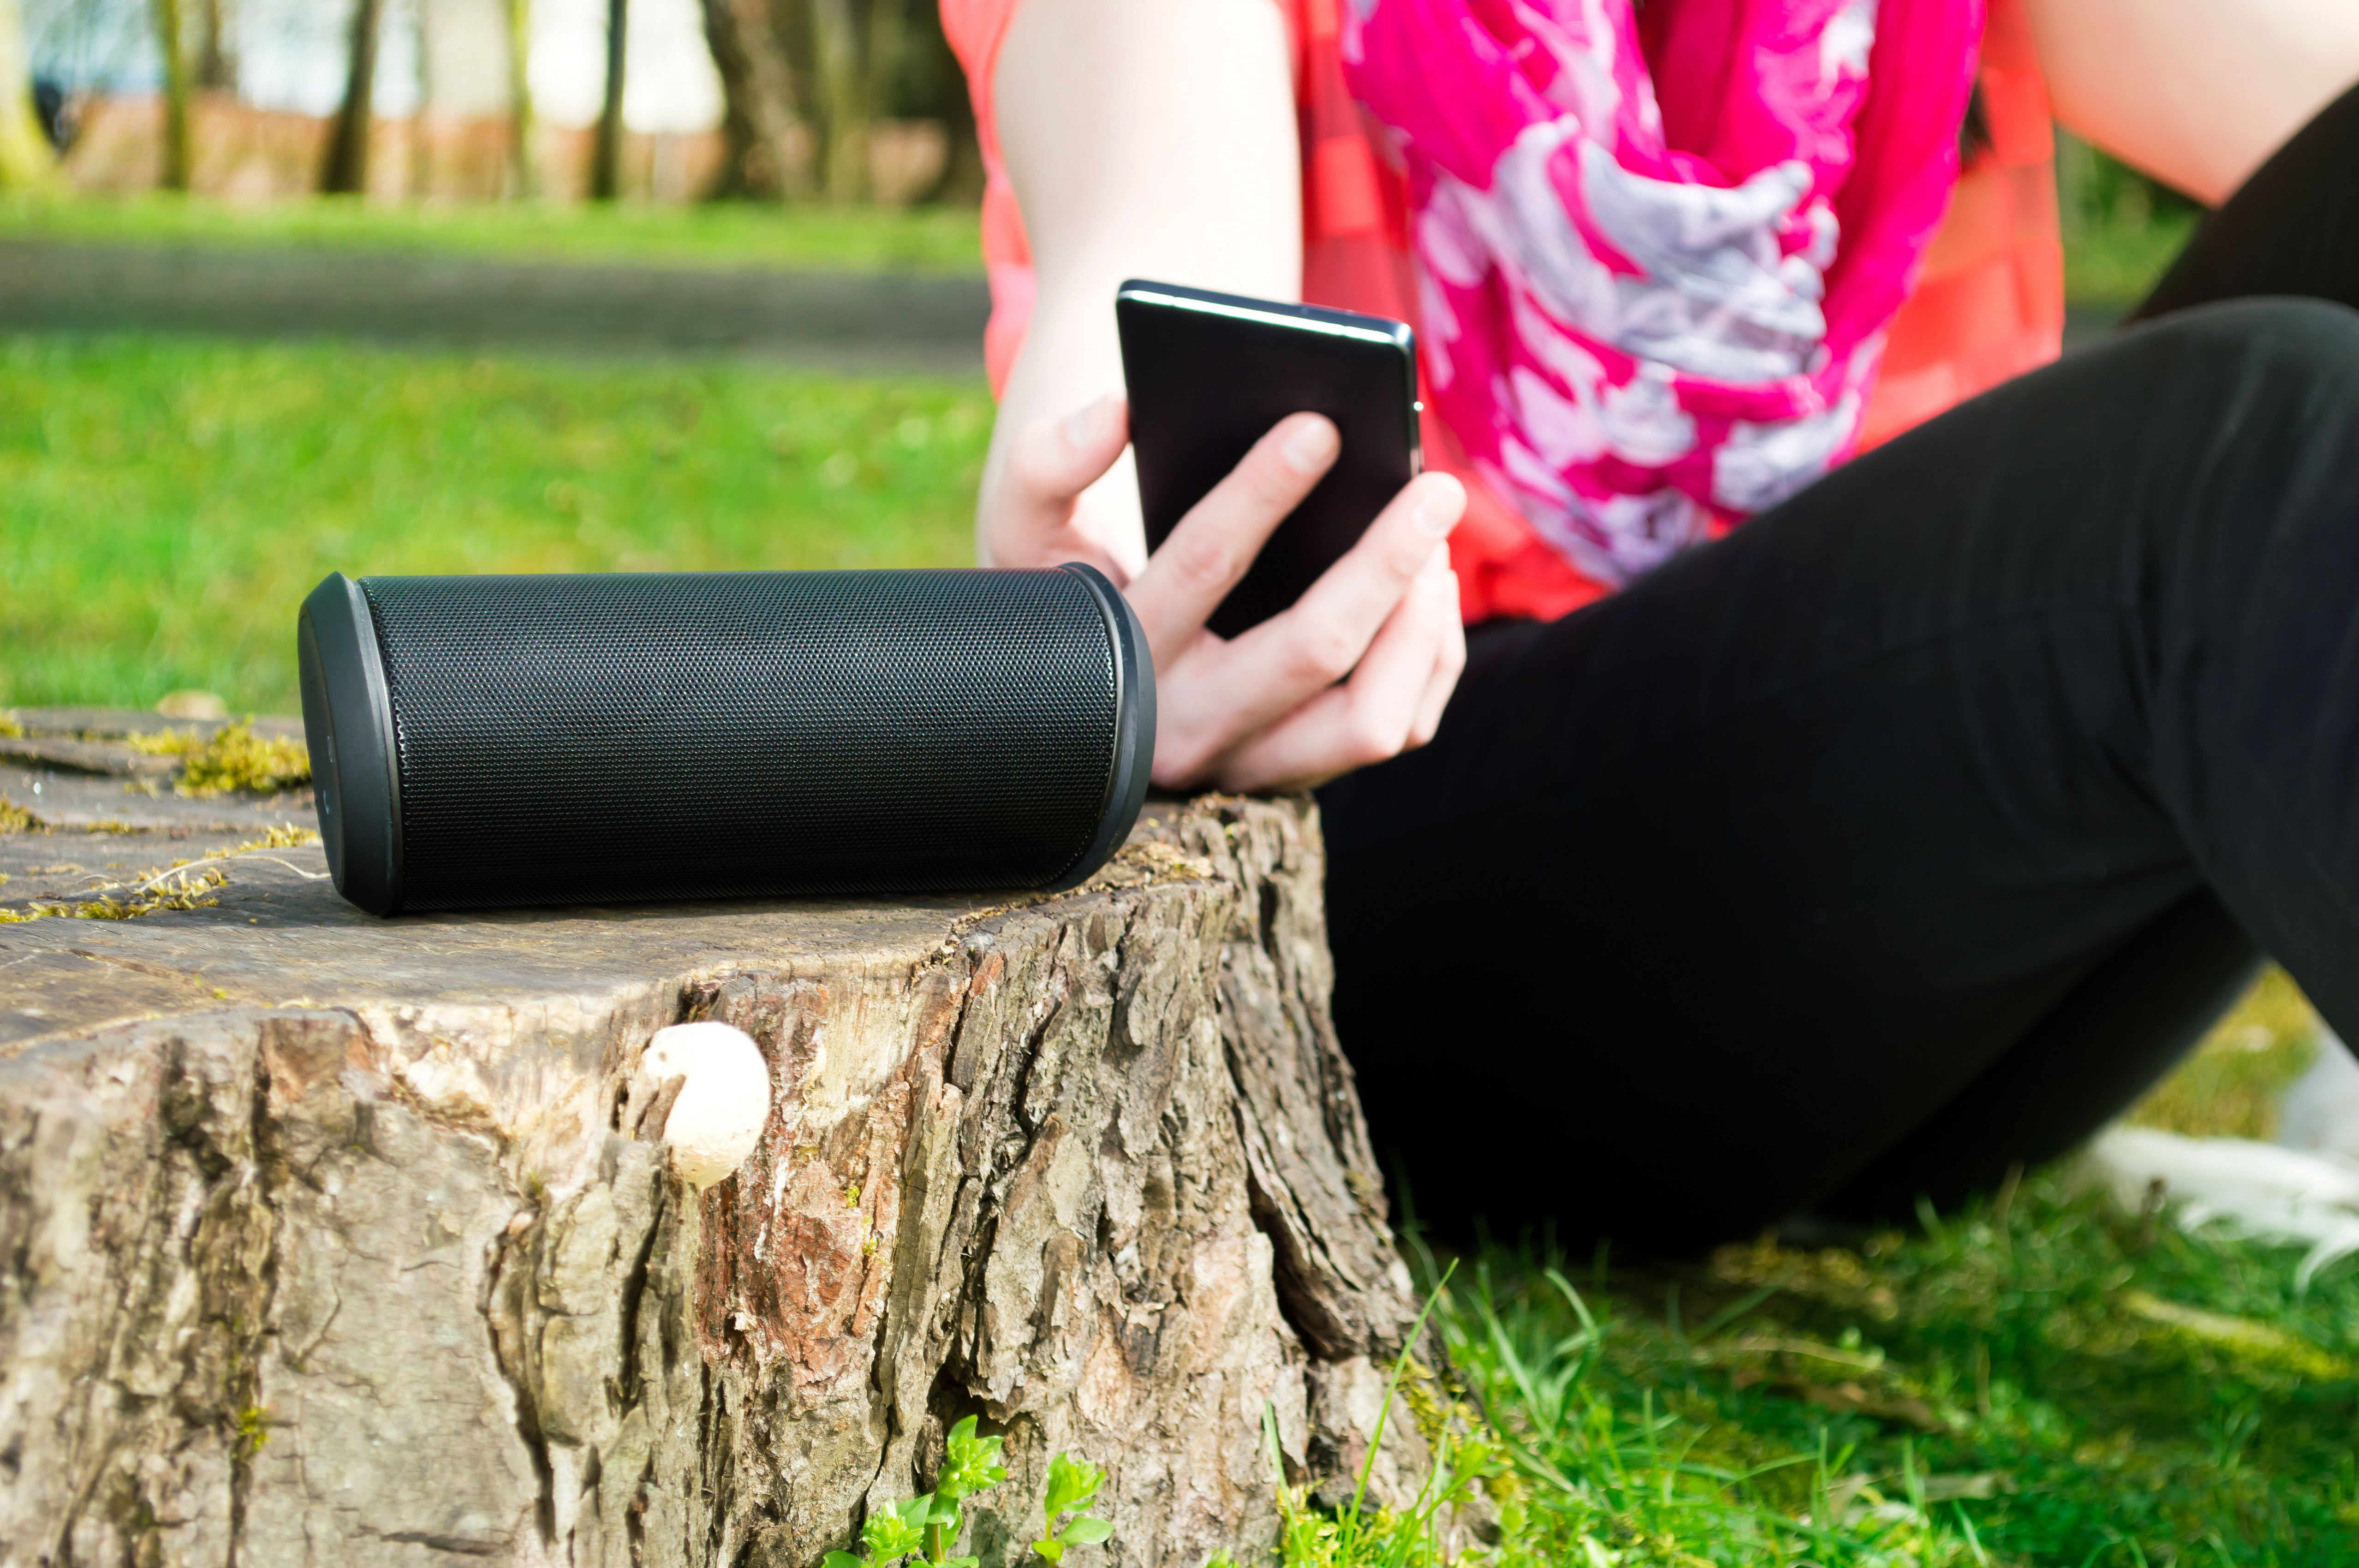 Woman is connecting her smartphone with wireless speaker while being outdoor.